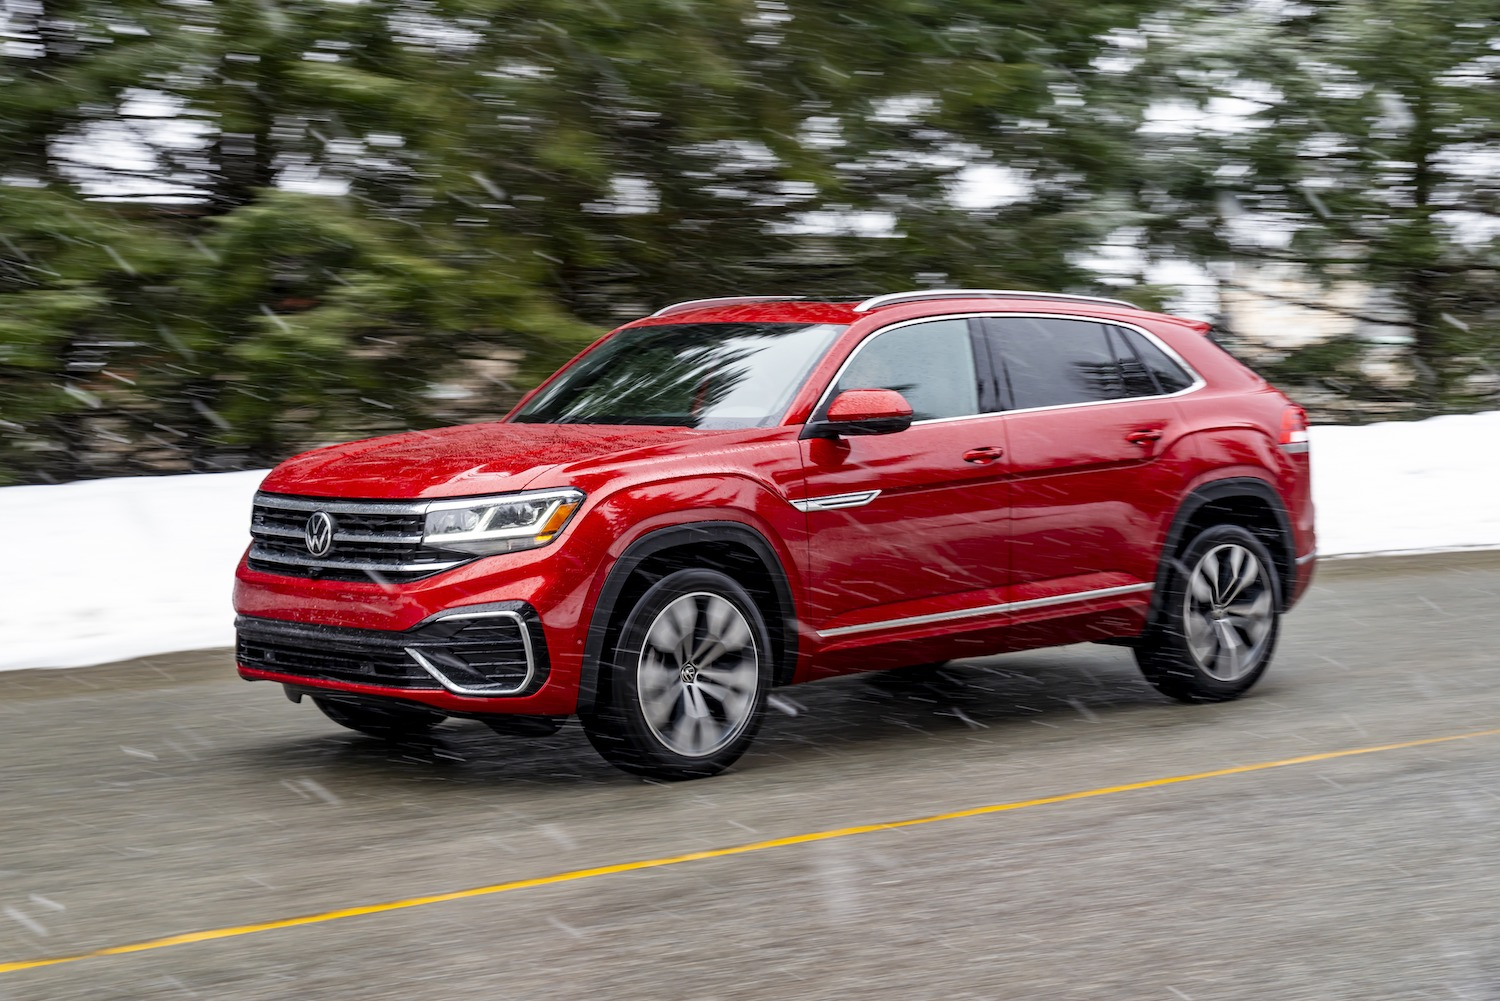 2020 Atlas Cross Sport Aurora Red front three-quarter on road action